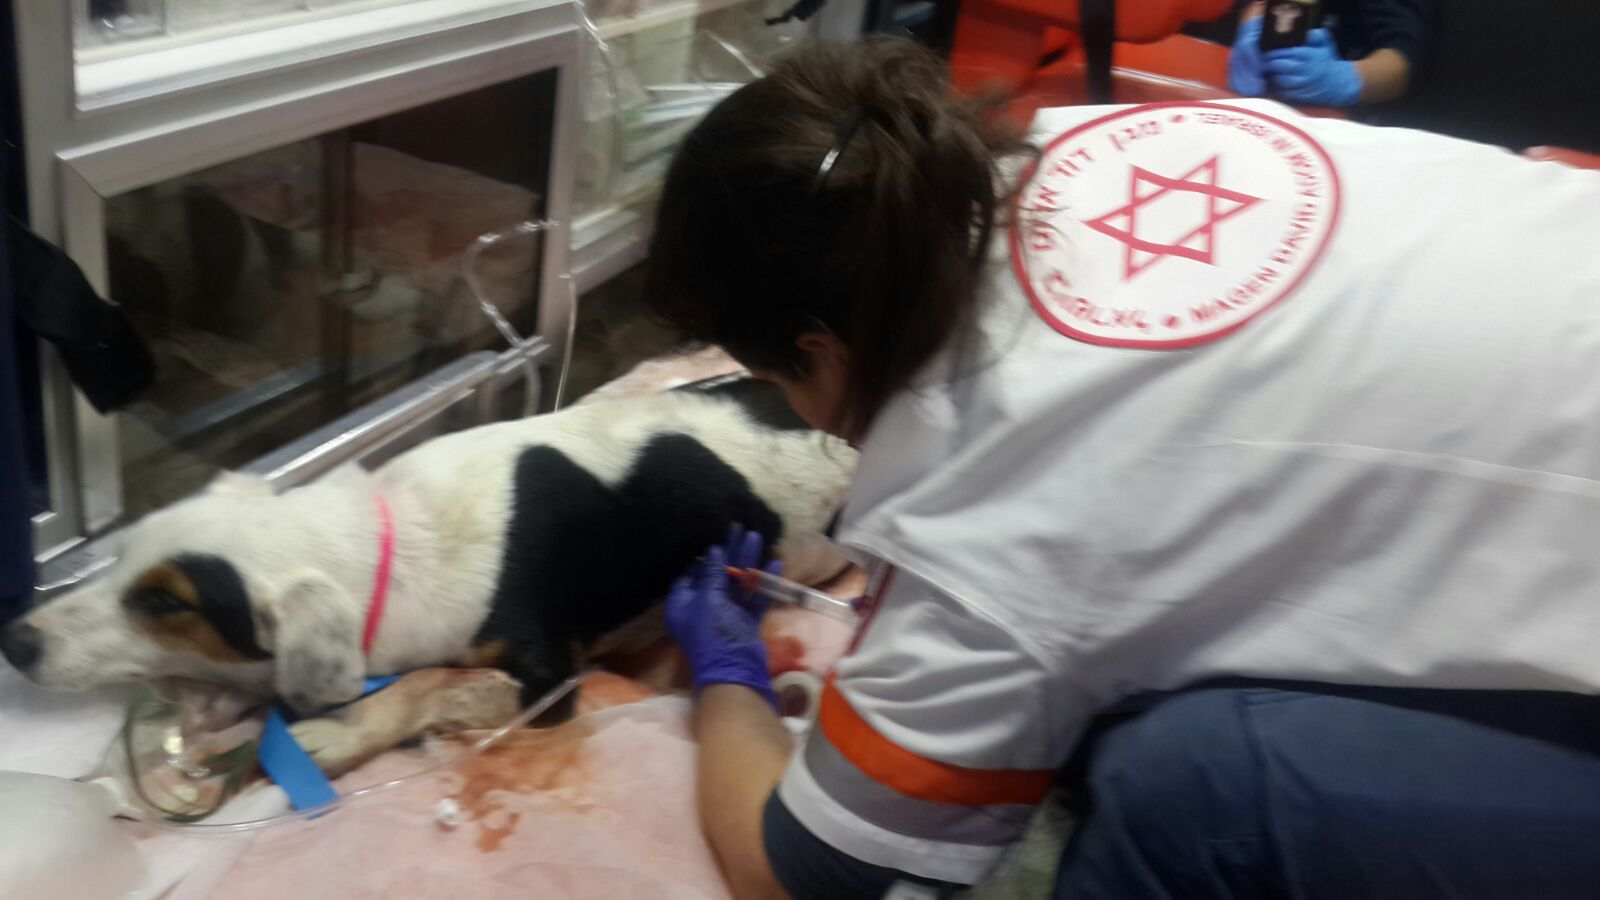 Paramedic Liat Mizrahi draining air from the injured dog's chest. Photo courtesy of MDA Spokesman's Office